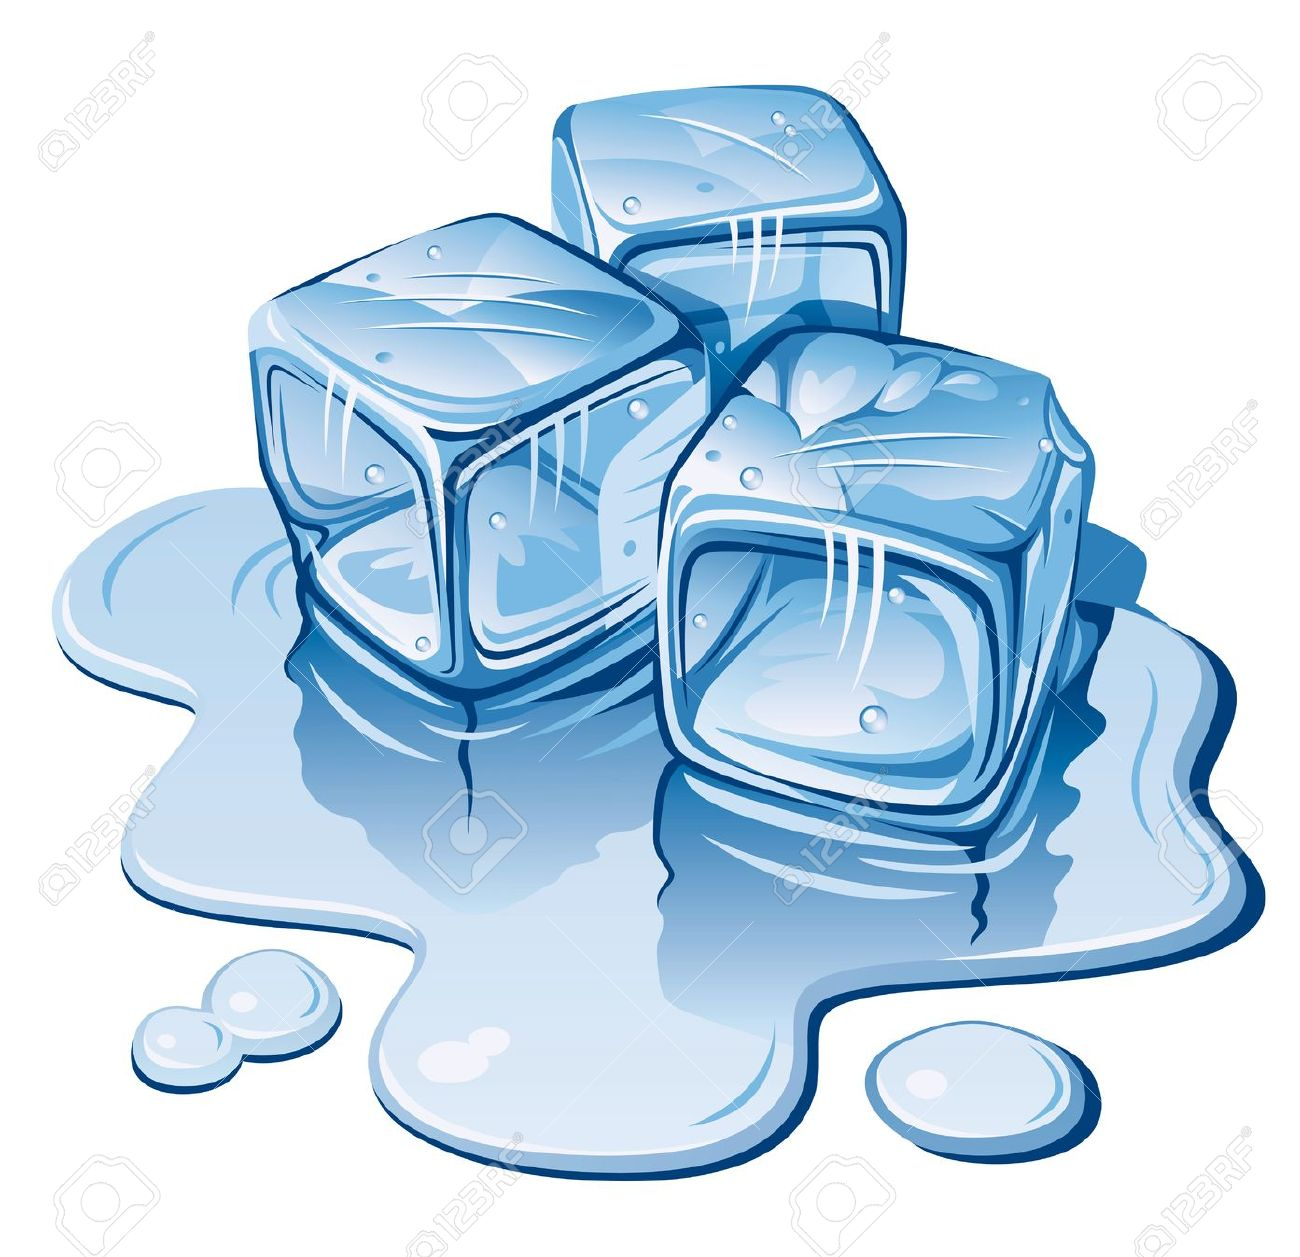 ice clipart-ice clipart-2